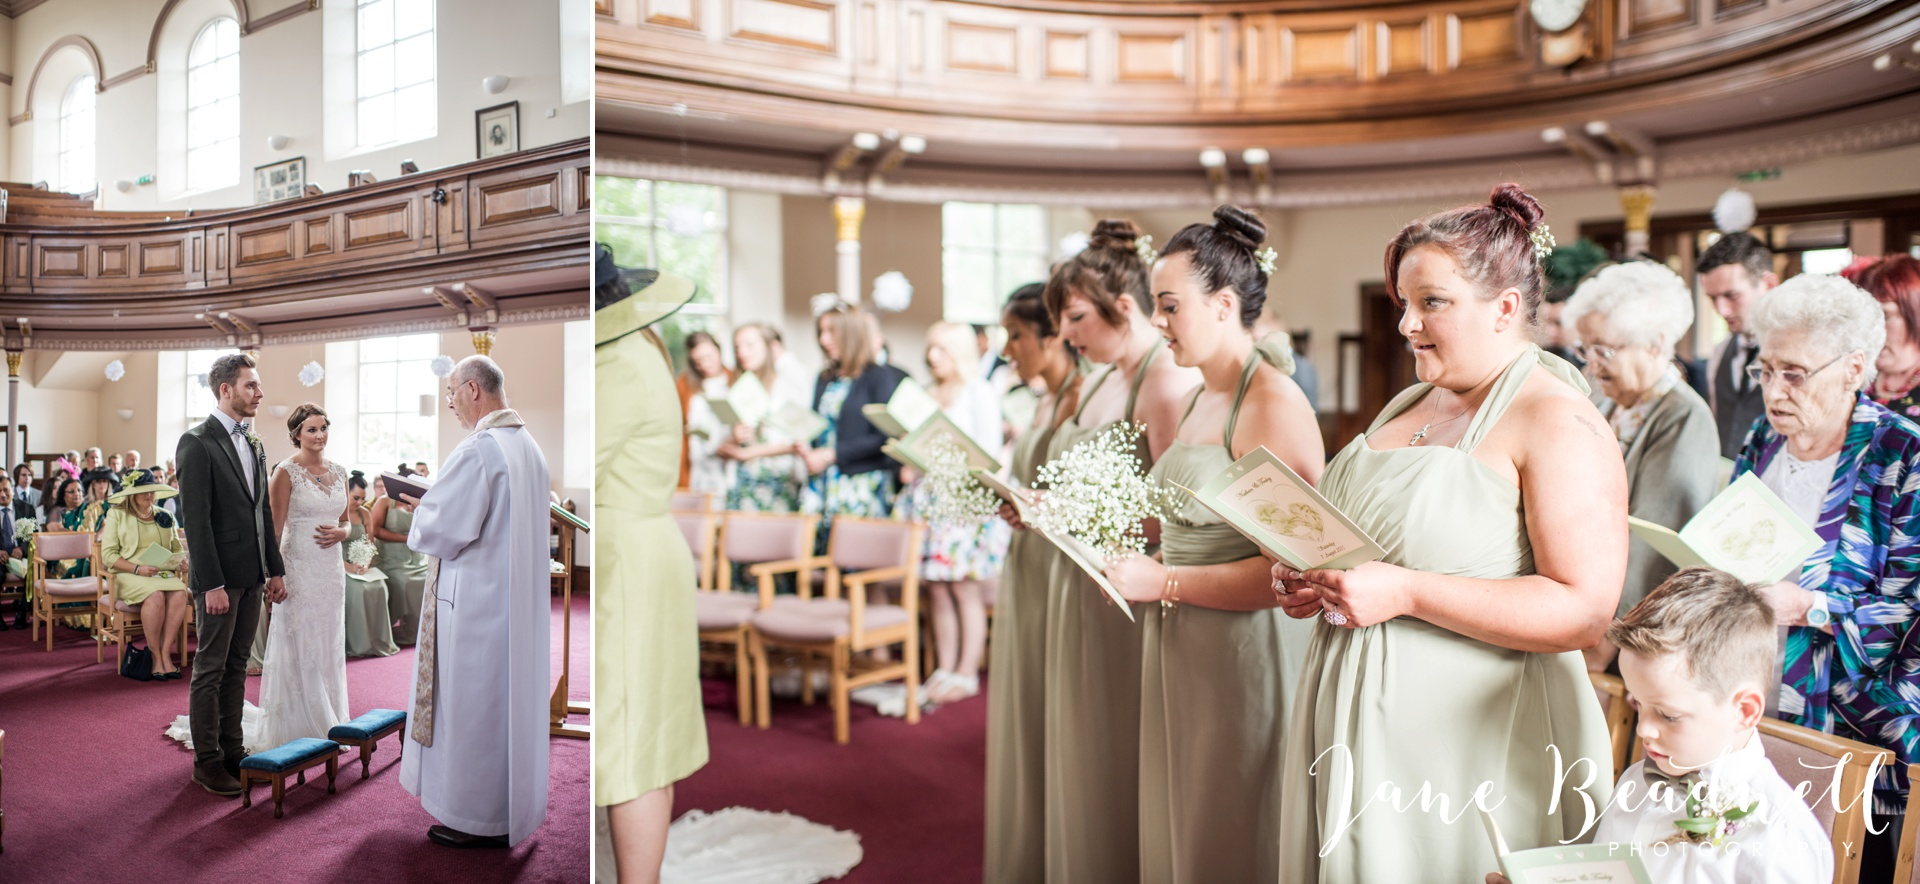 Jane Beadnell fine art wedding photographer The Old Deanery Ripon_0029